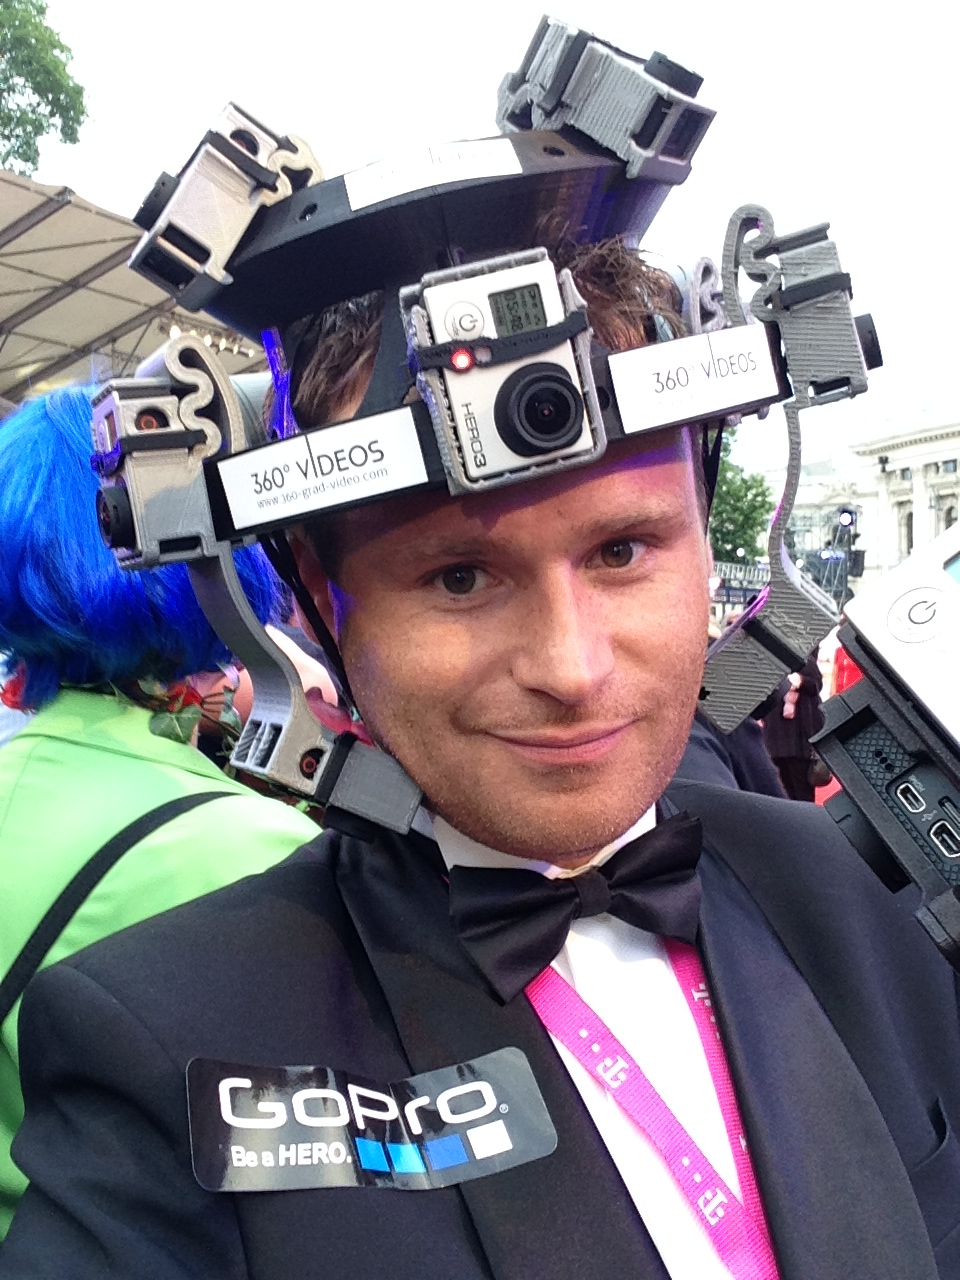 GoPro Helmet Life Ball 360 degree video